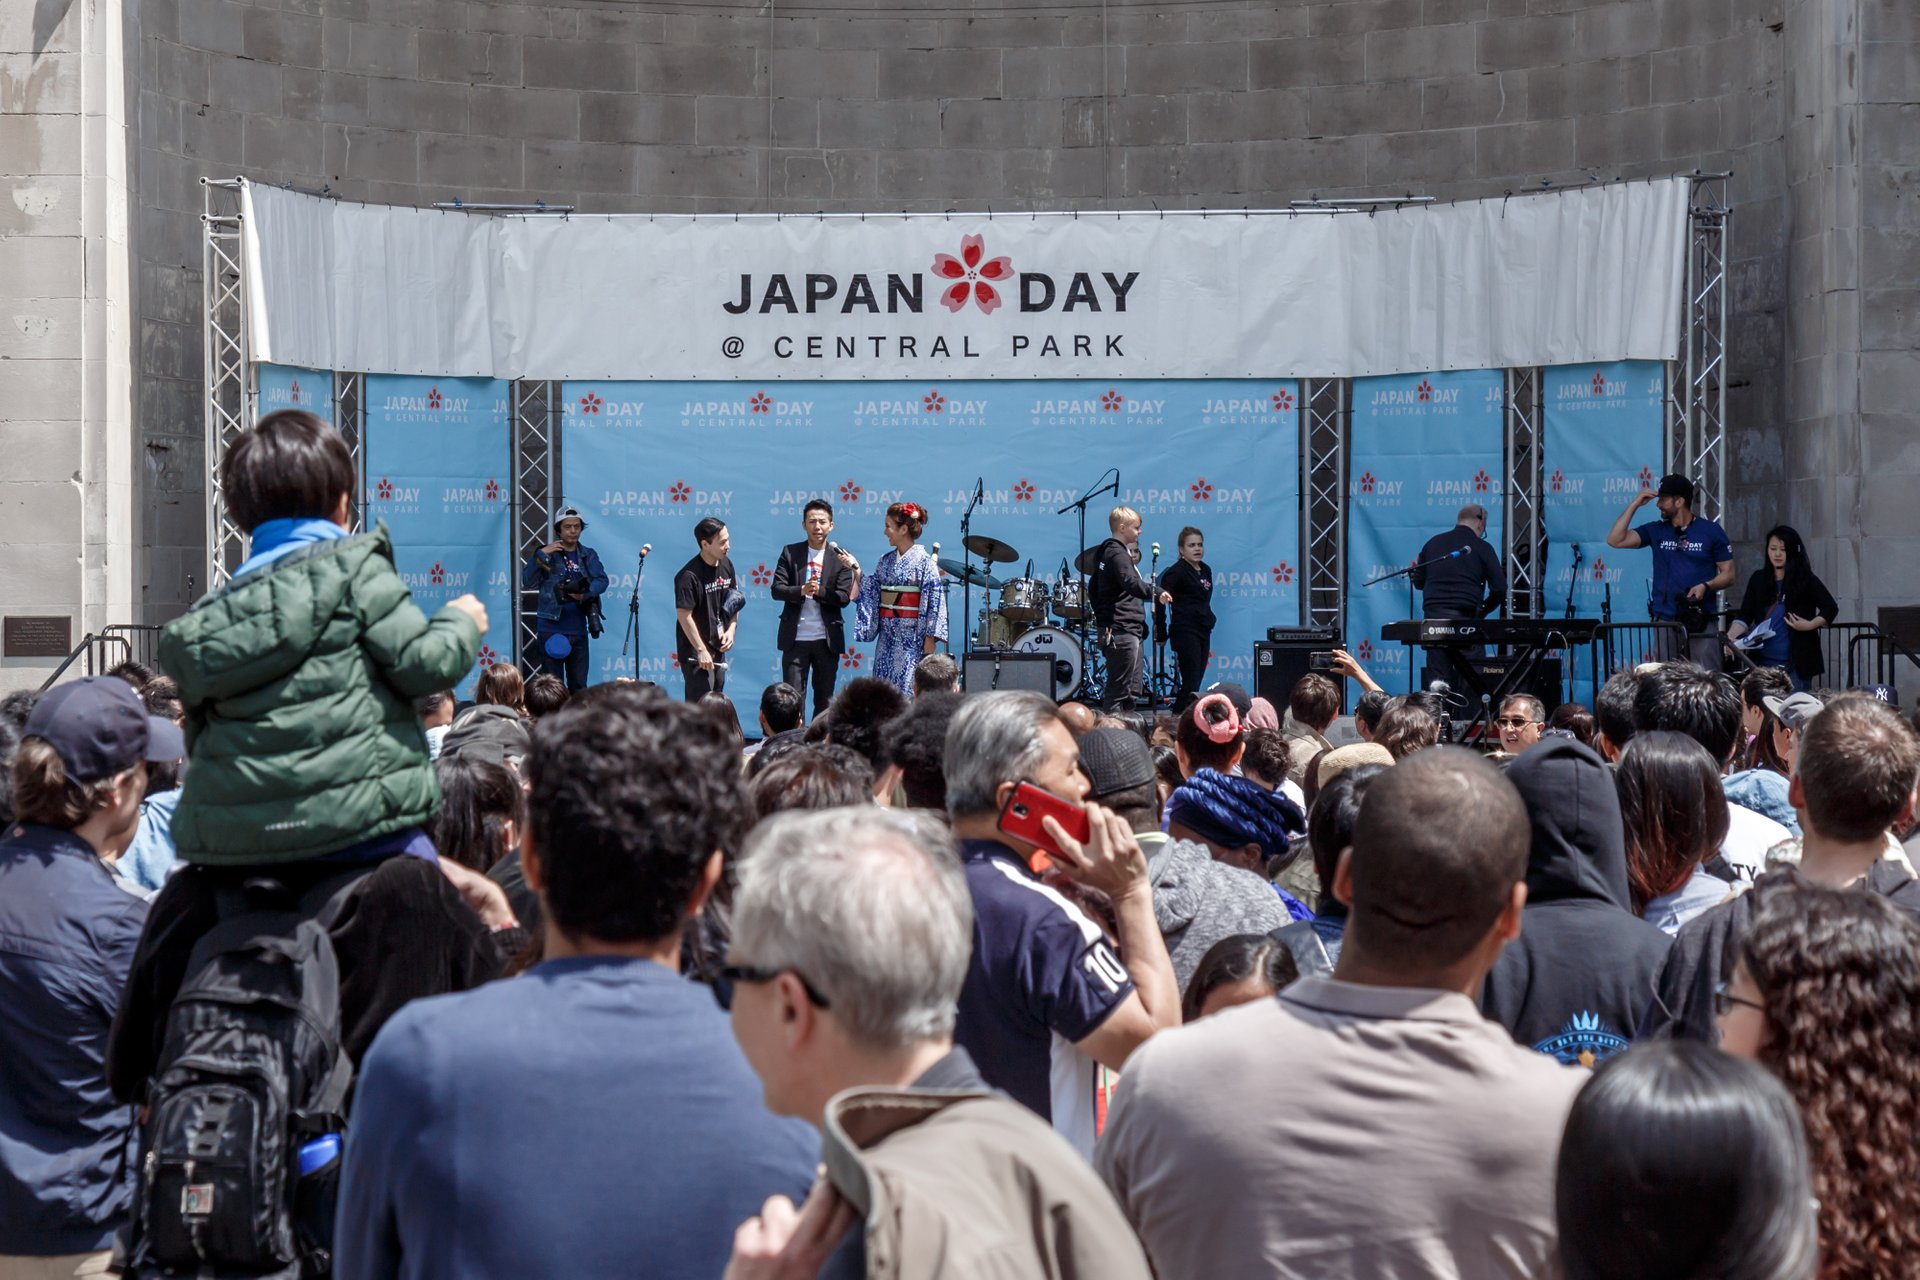 Japan Day @ Central Park in New York 2020 - Best Time